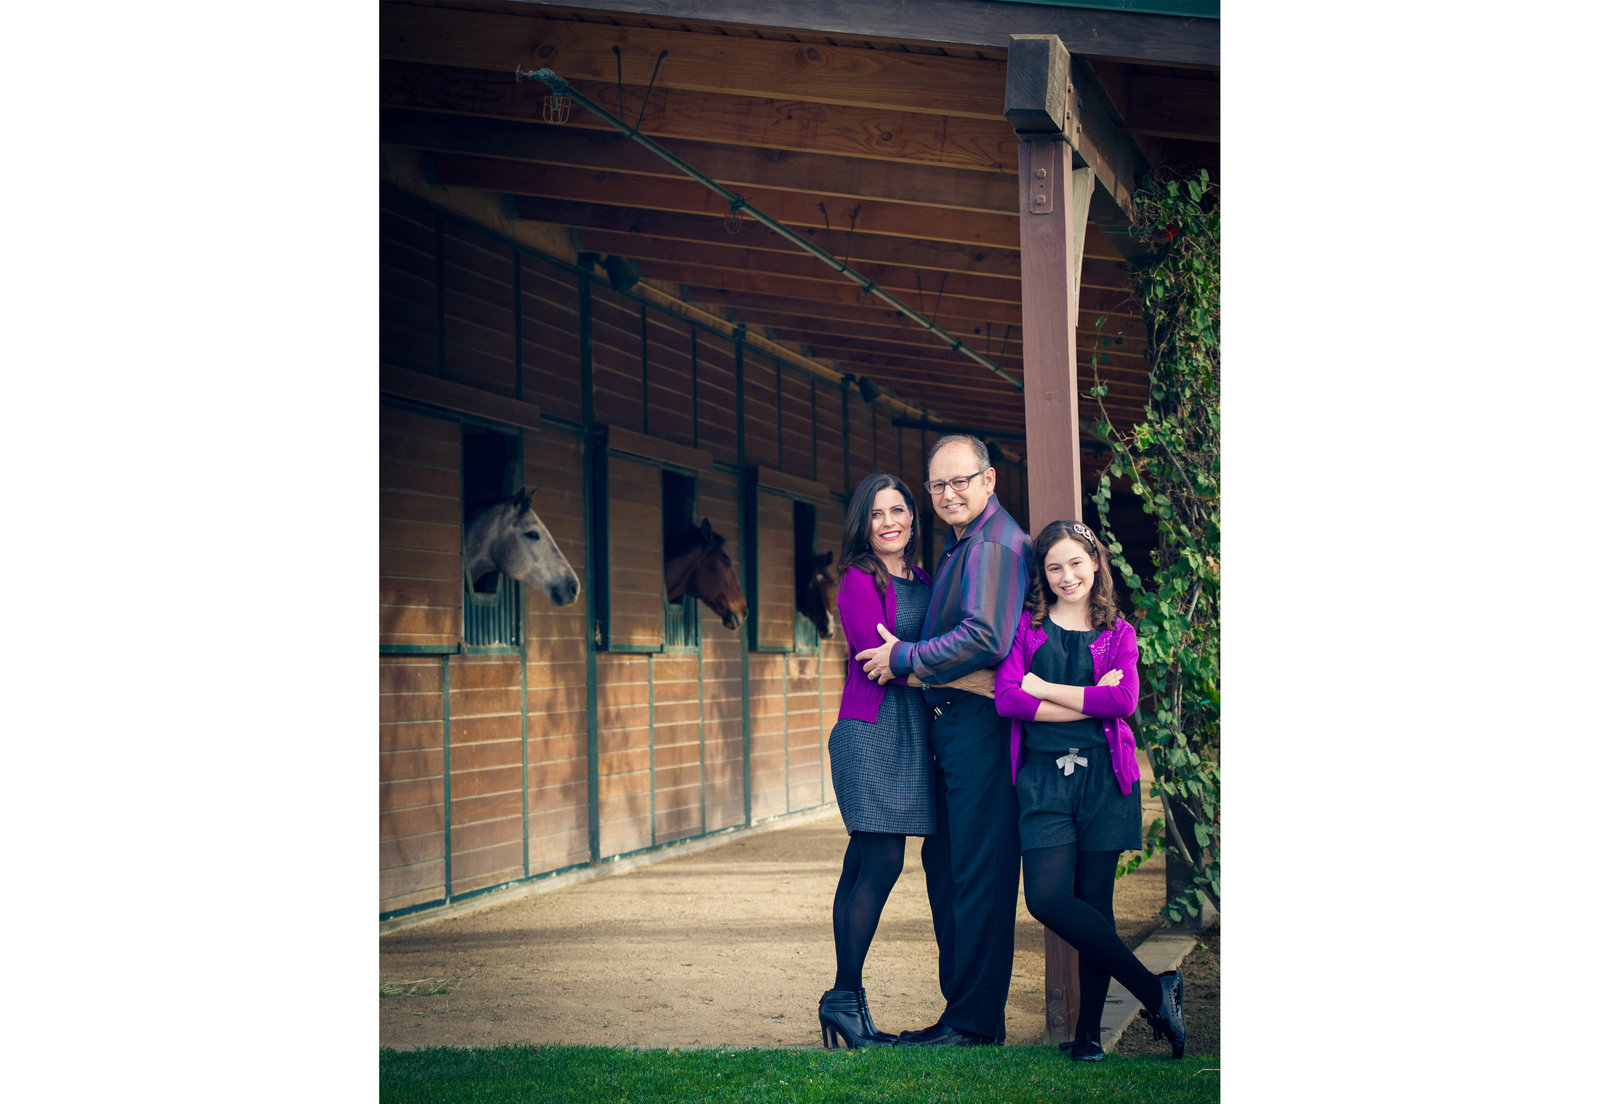 family photography at horse stable in San Juan Capistrano by inGRACE photography